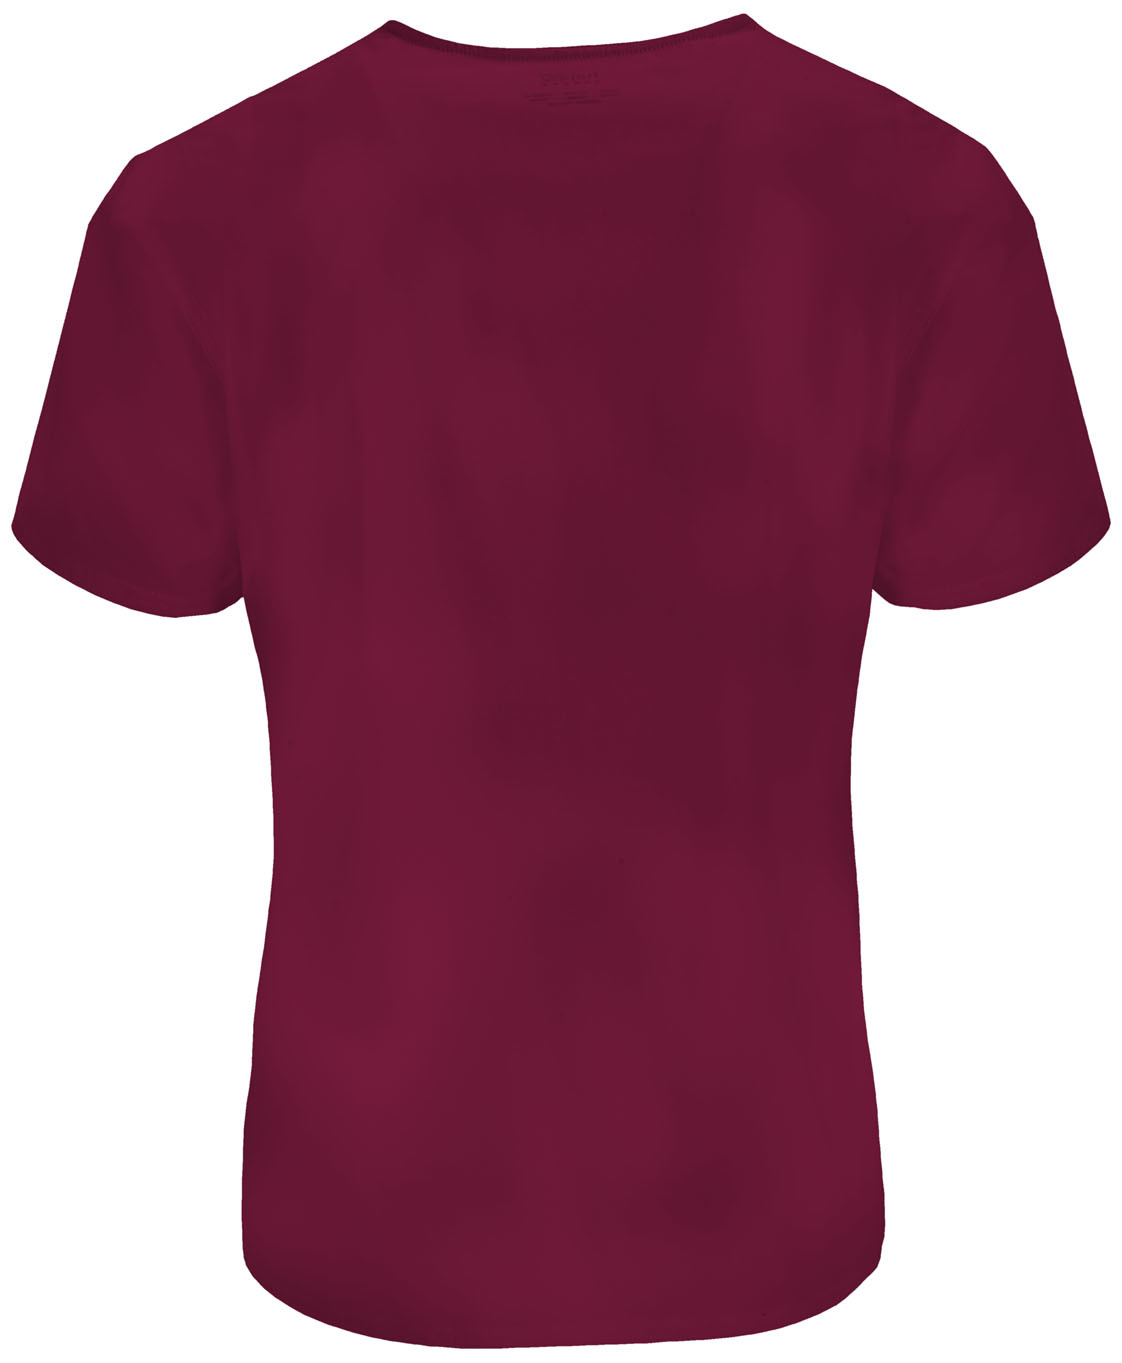 CODE HAPPY Wine Men's V-Neck Top 16600A